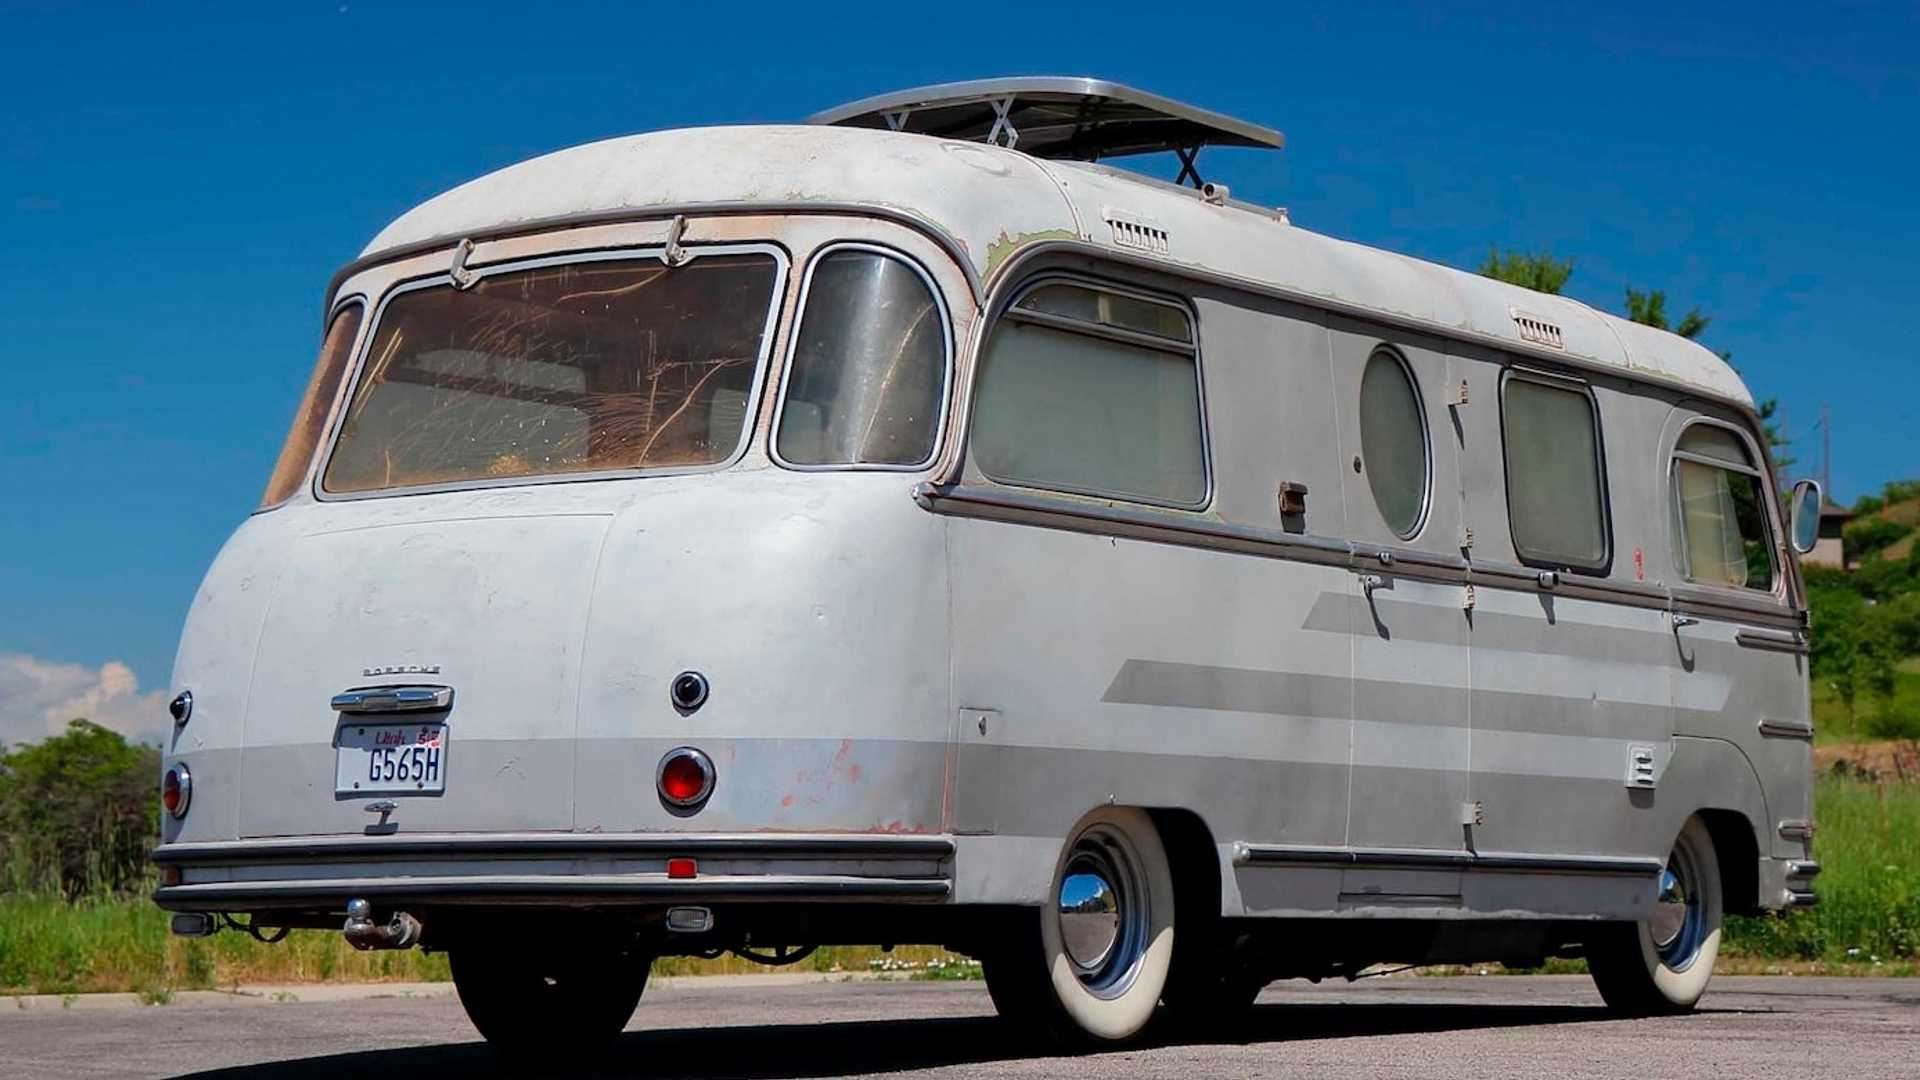 Buy This Porsche-Powered Vintage RV, Become A #VanLife Boss